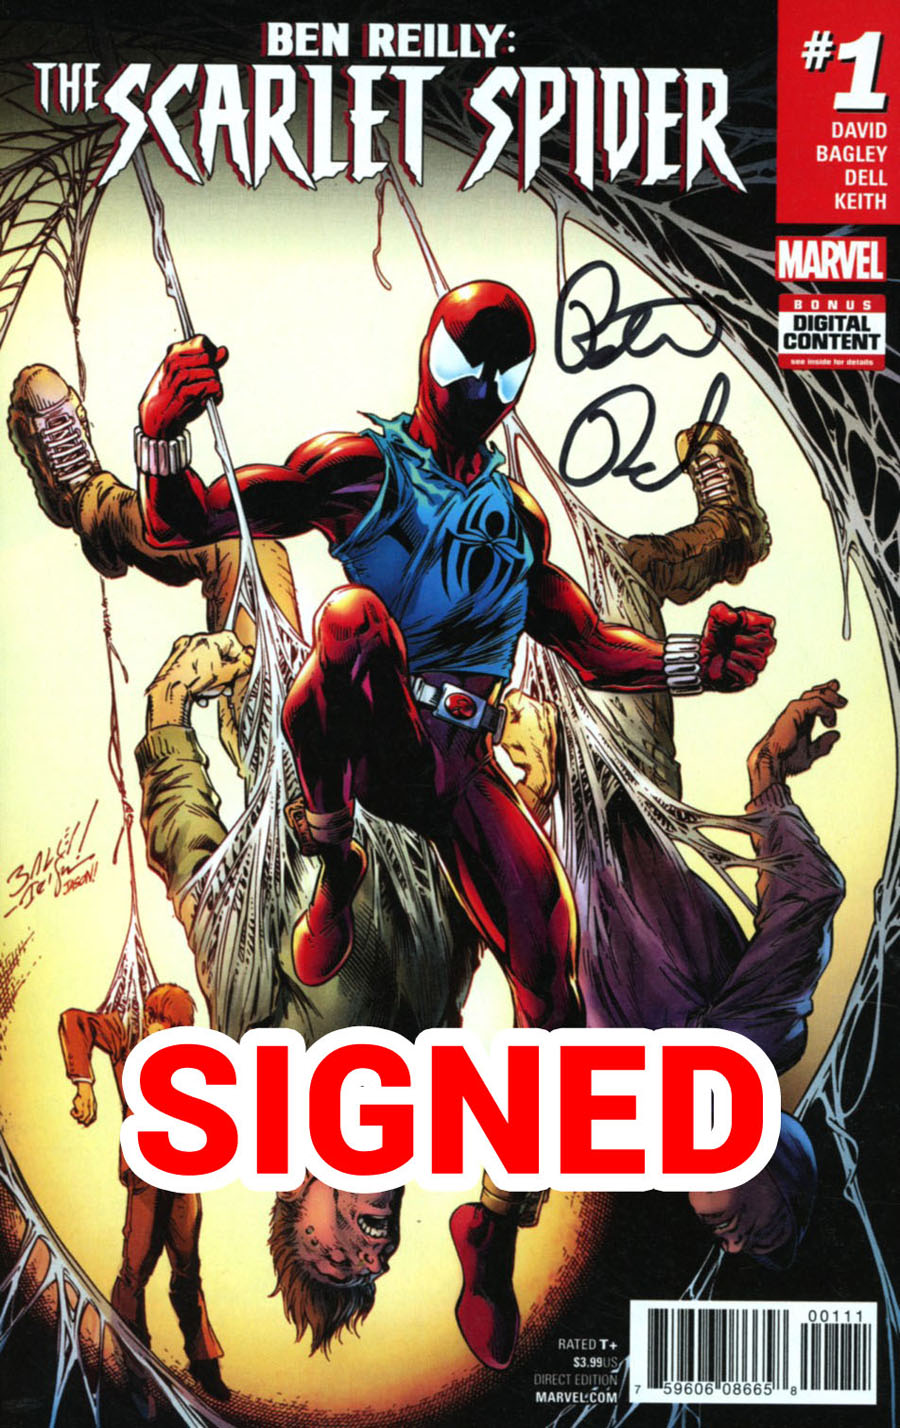 Ben Reilly The Scarlet Spider #1 Cover G Regular Mark Bagley Cover Signed By Peter David